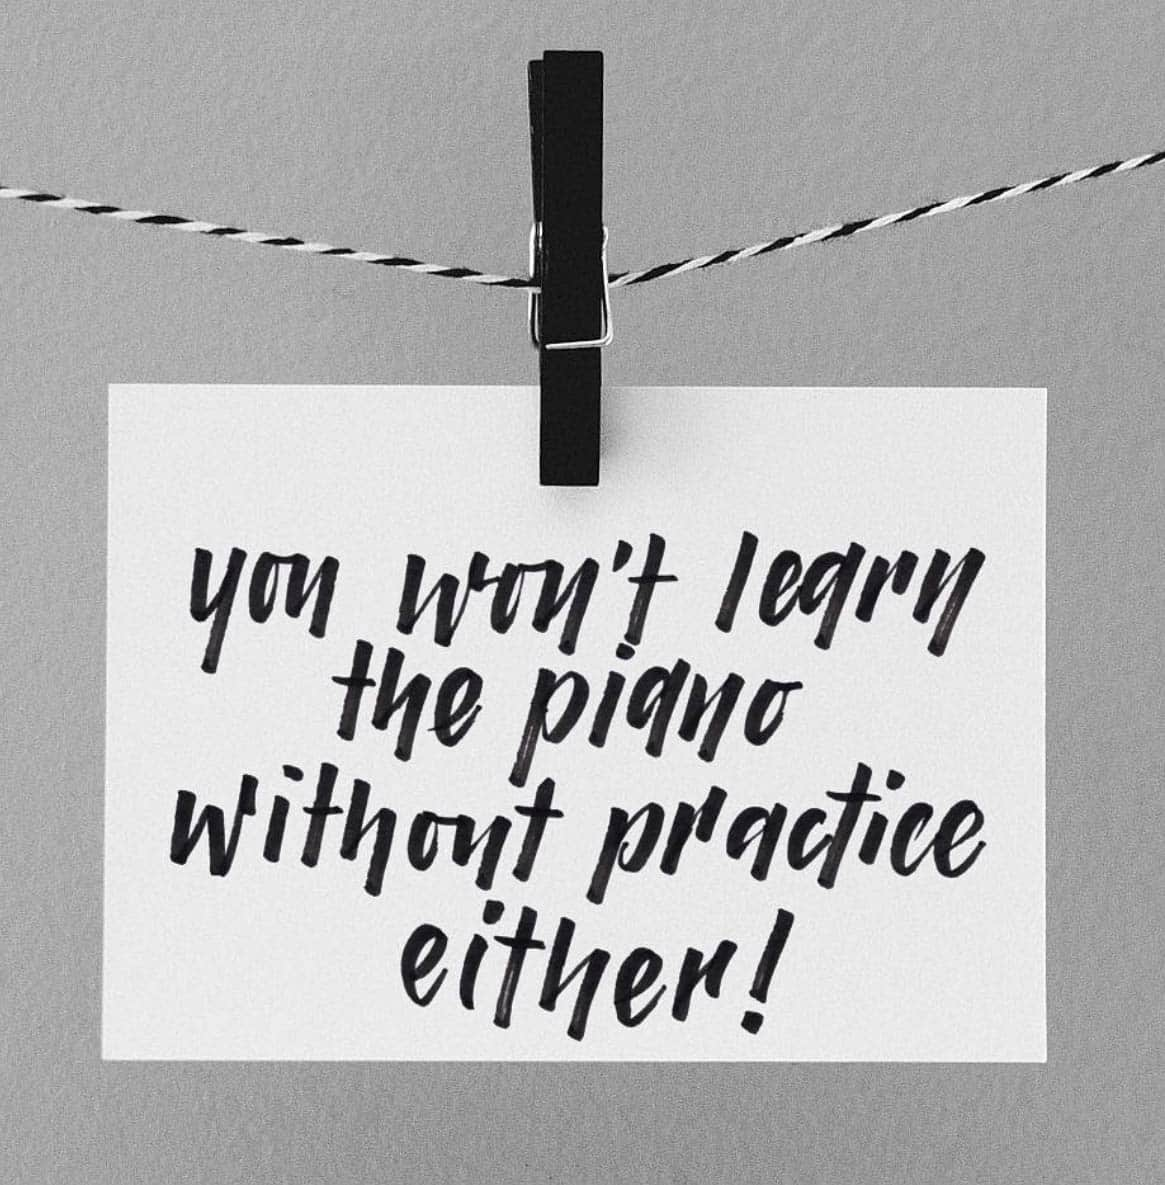 You won't learn the piano without practice either